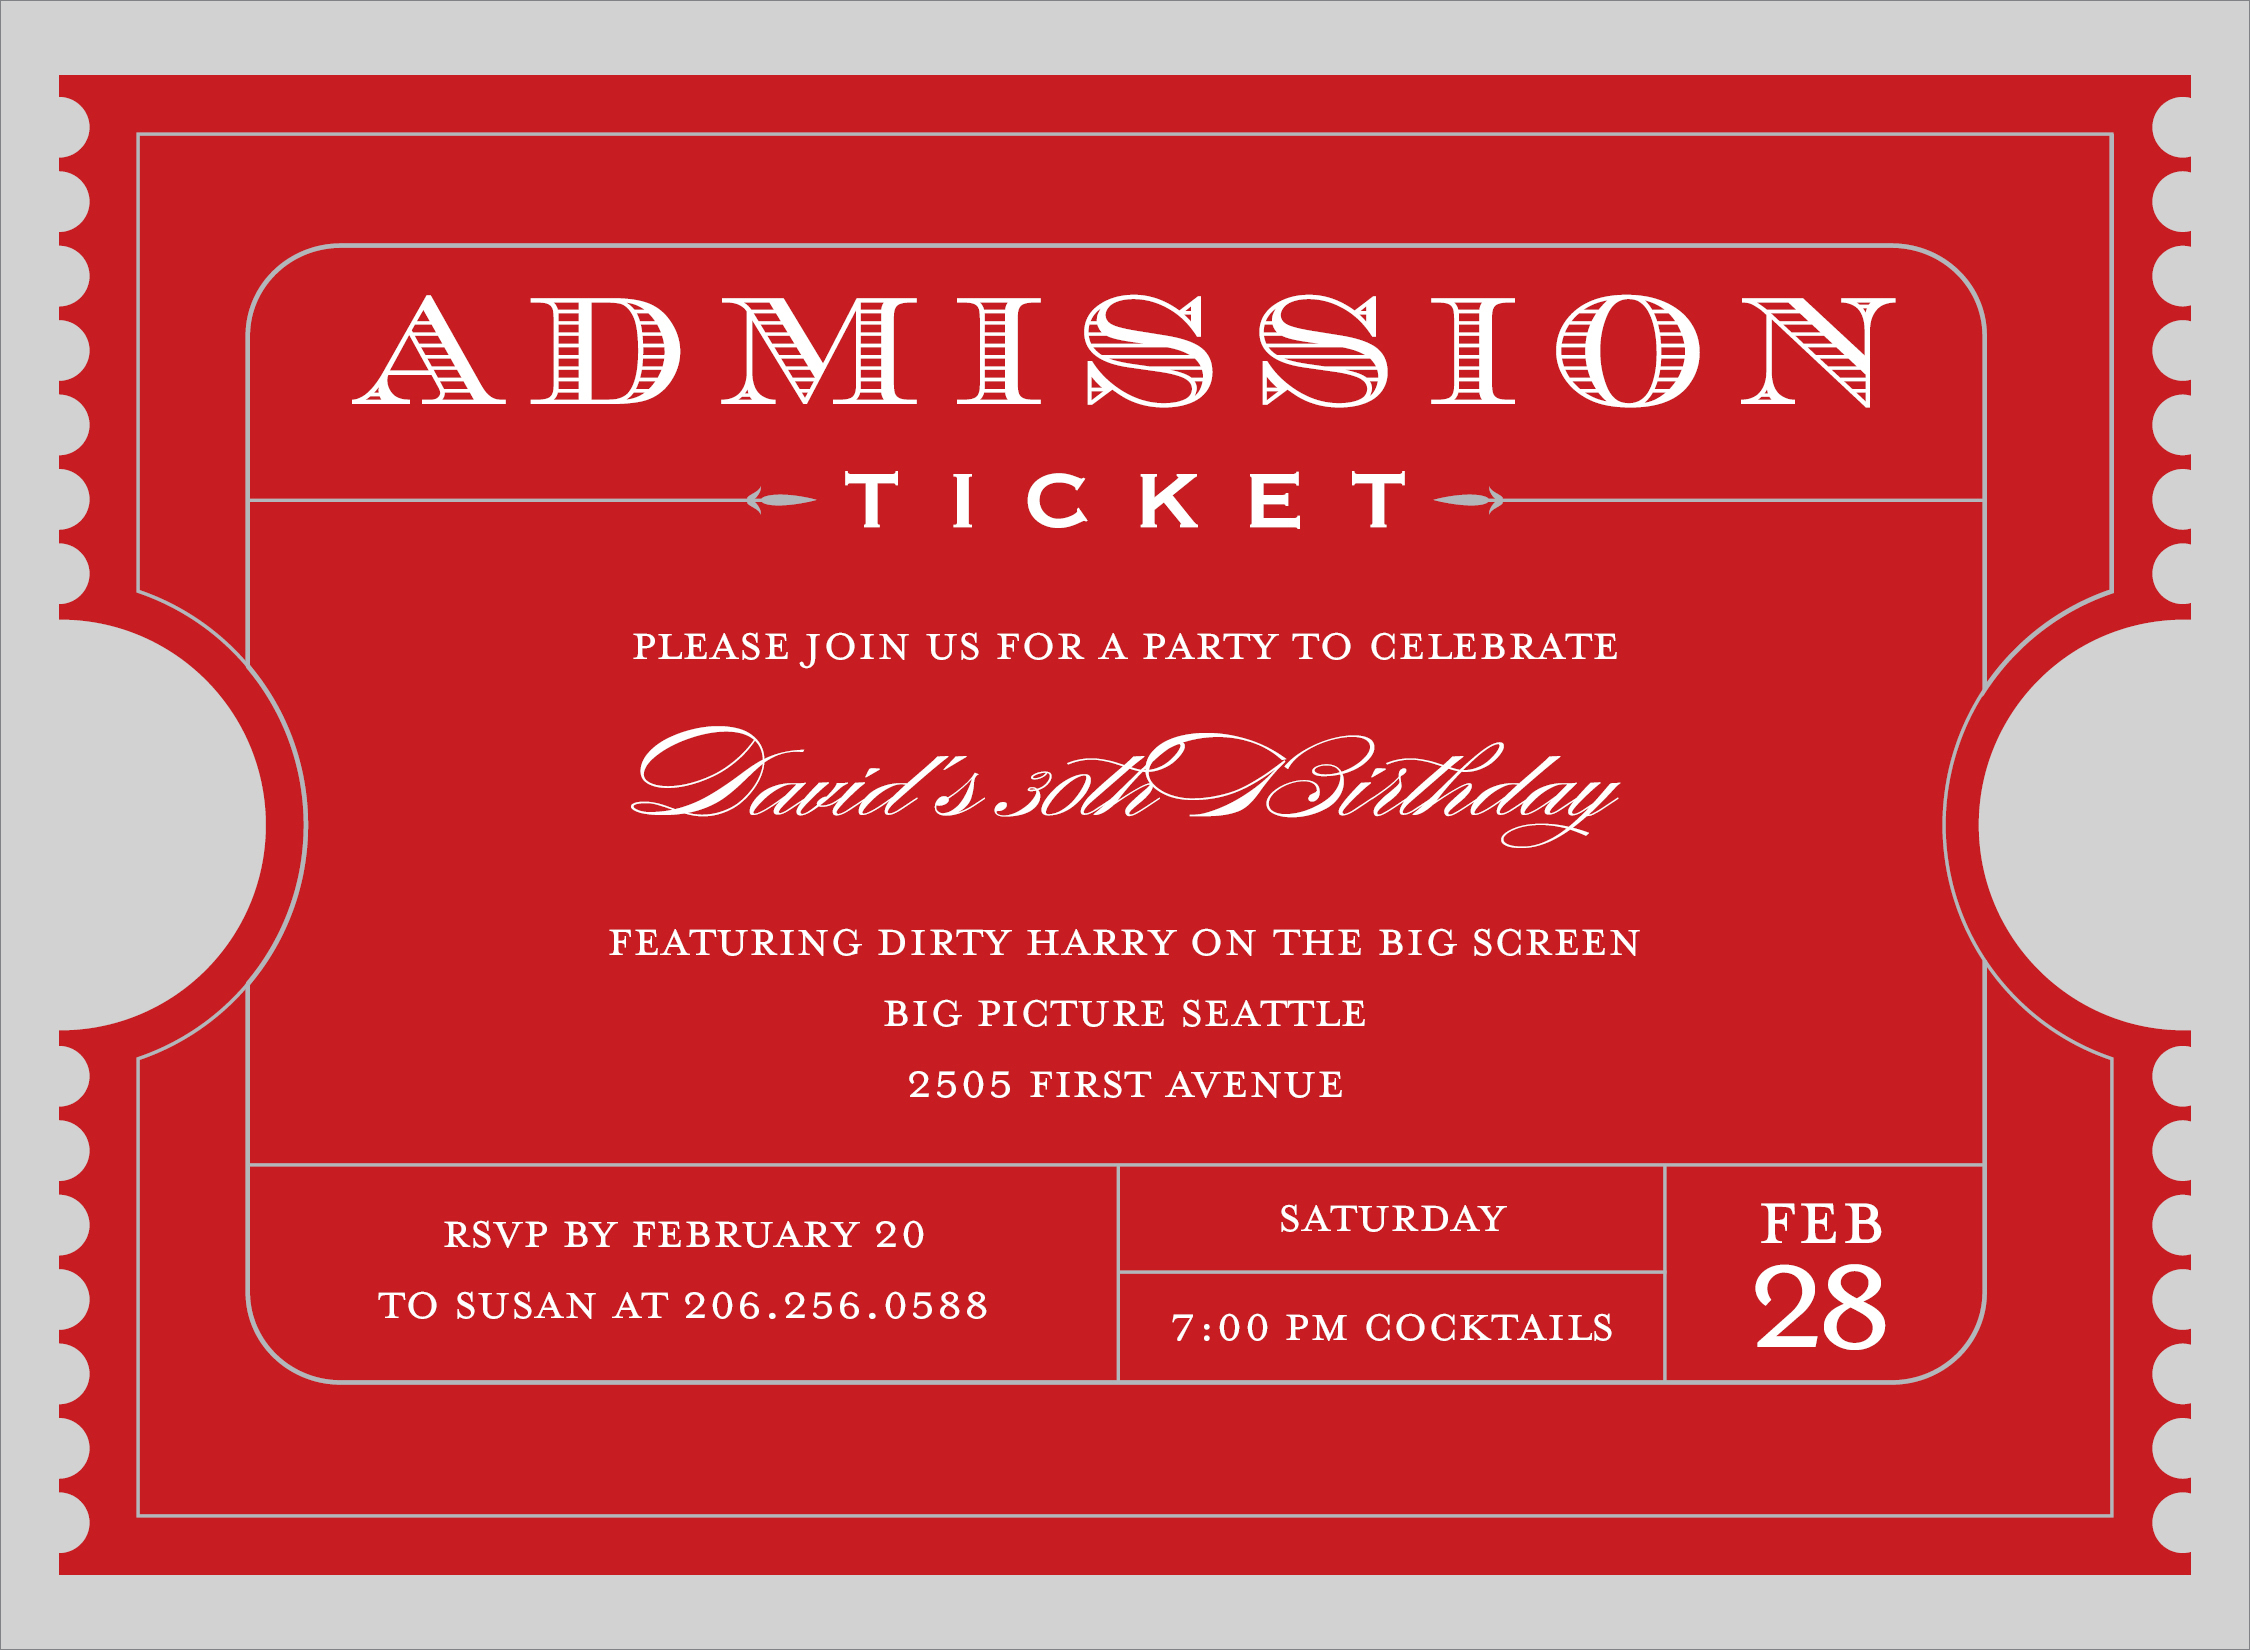 Admission Ticket Red Invitation - This Admission Ticket is a fun and ...